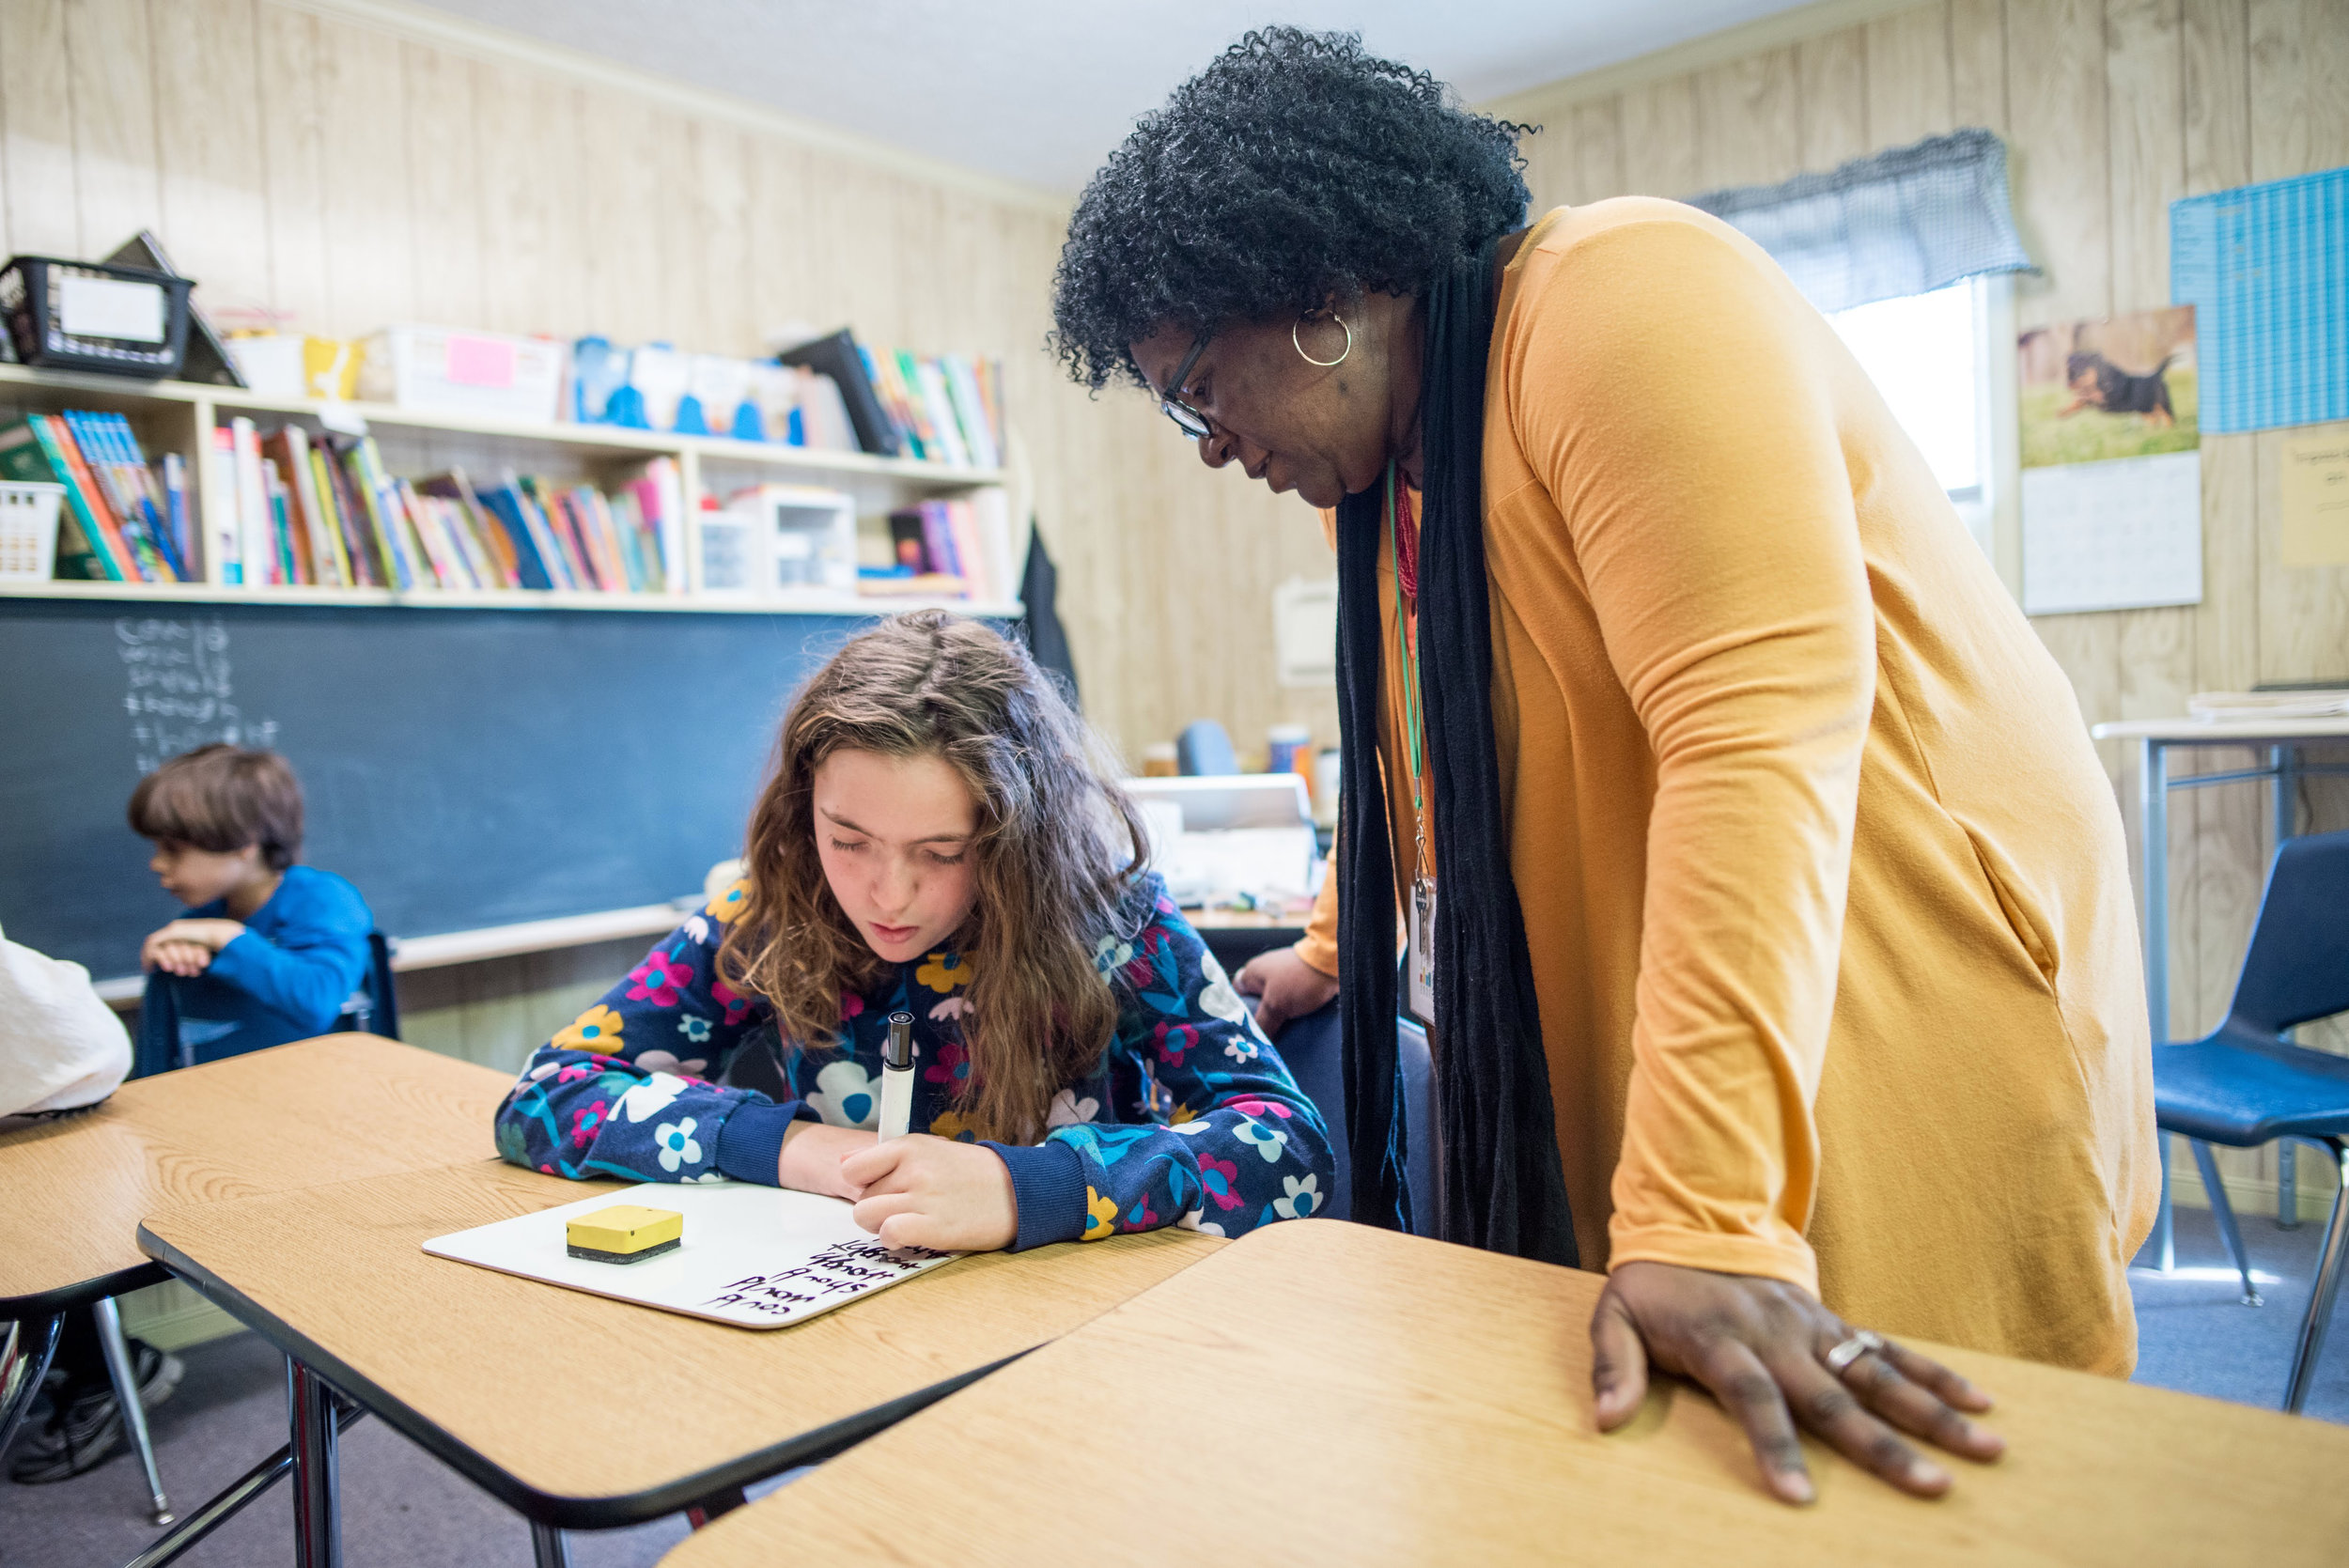 Specialized, 1:1 instruction better helps students succeed.